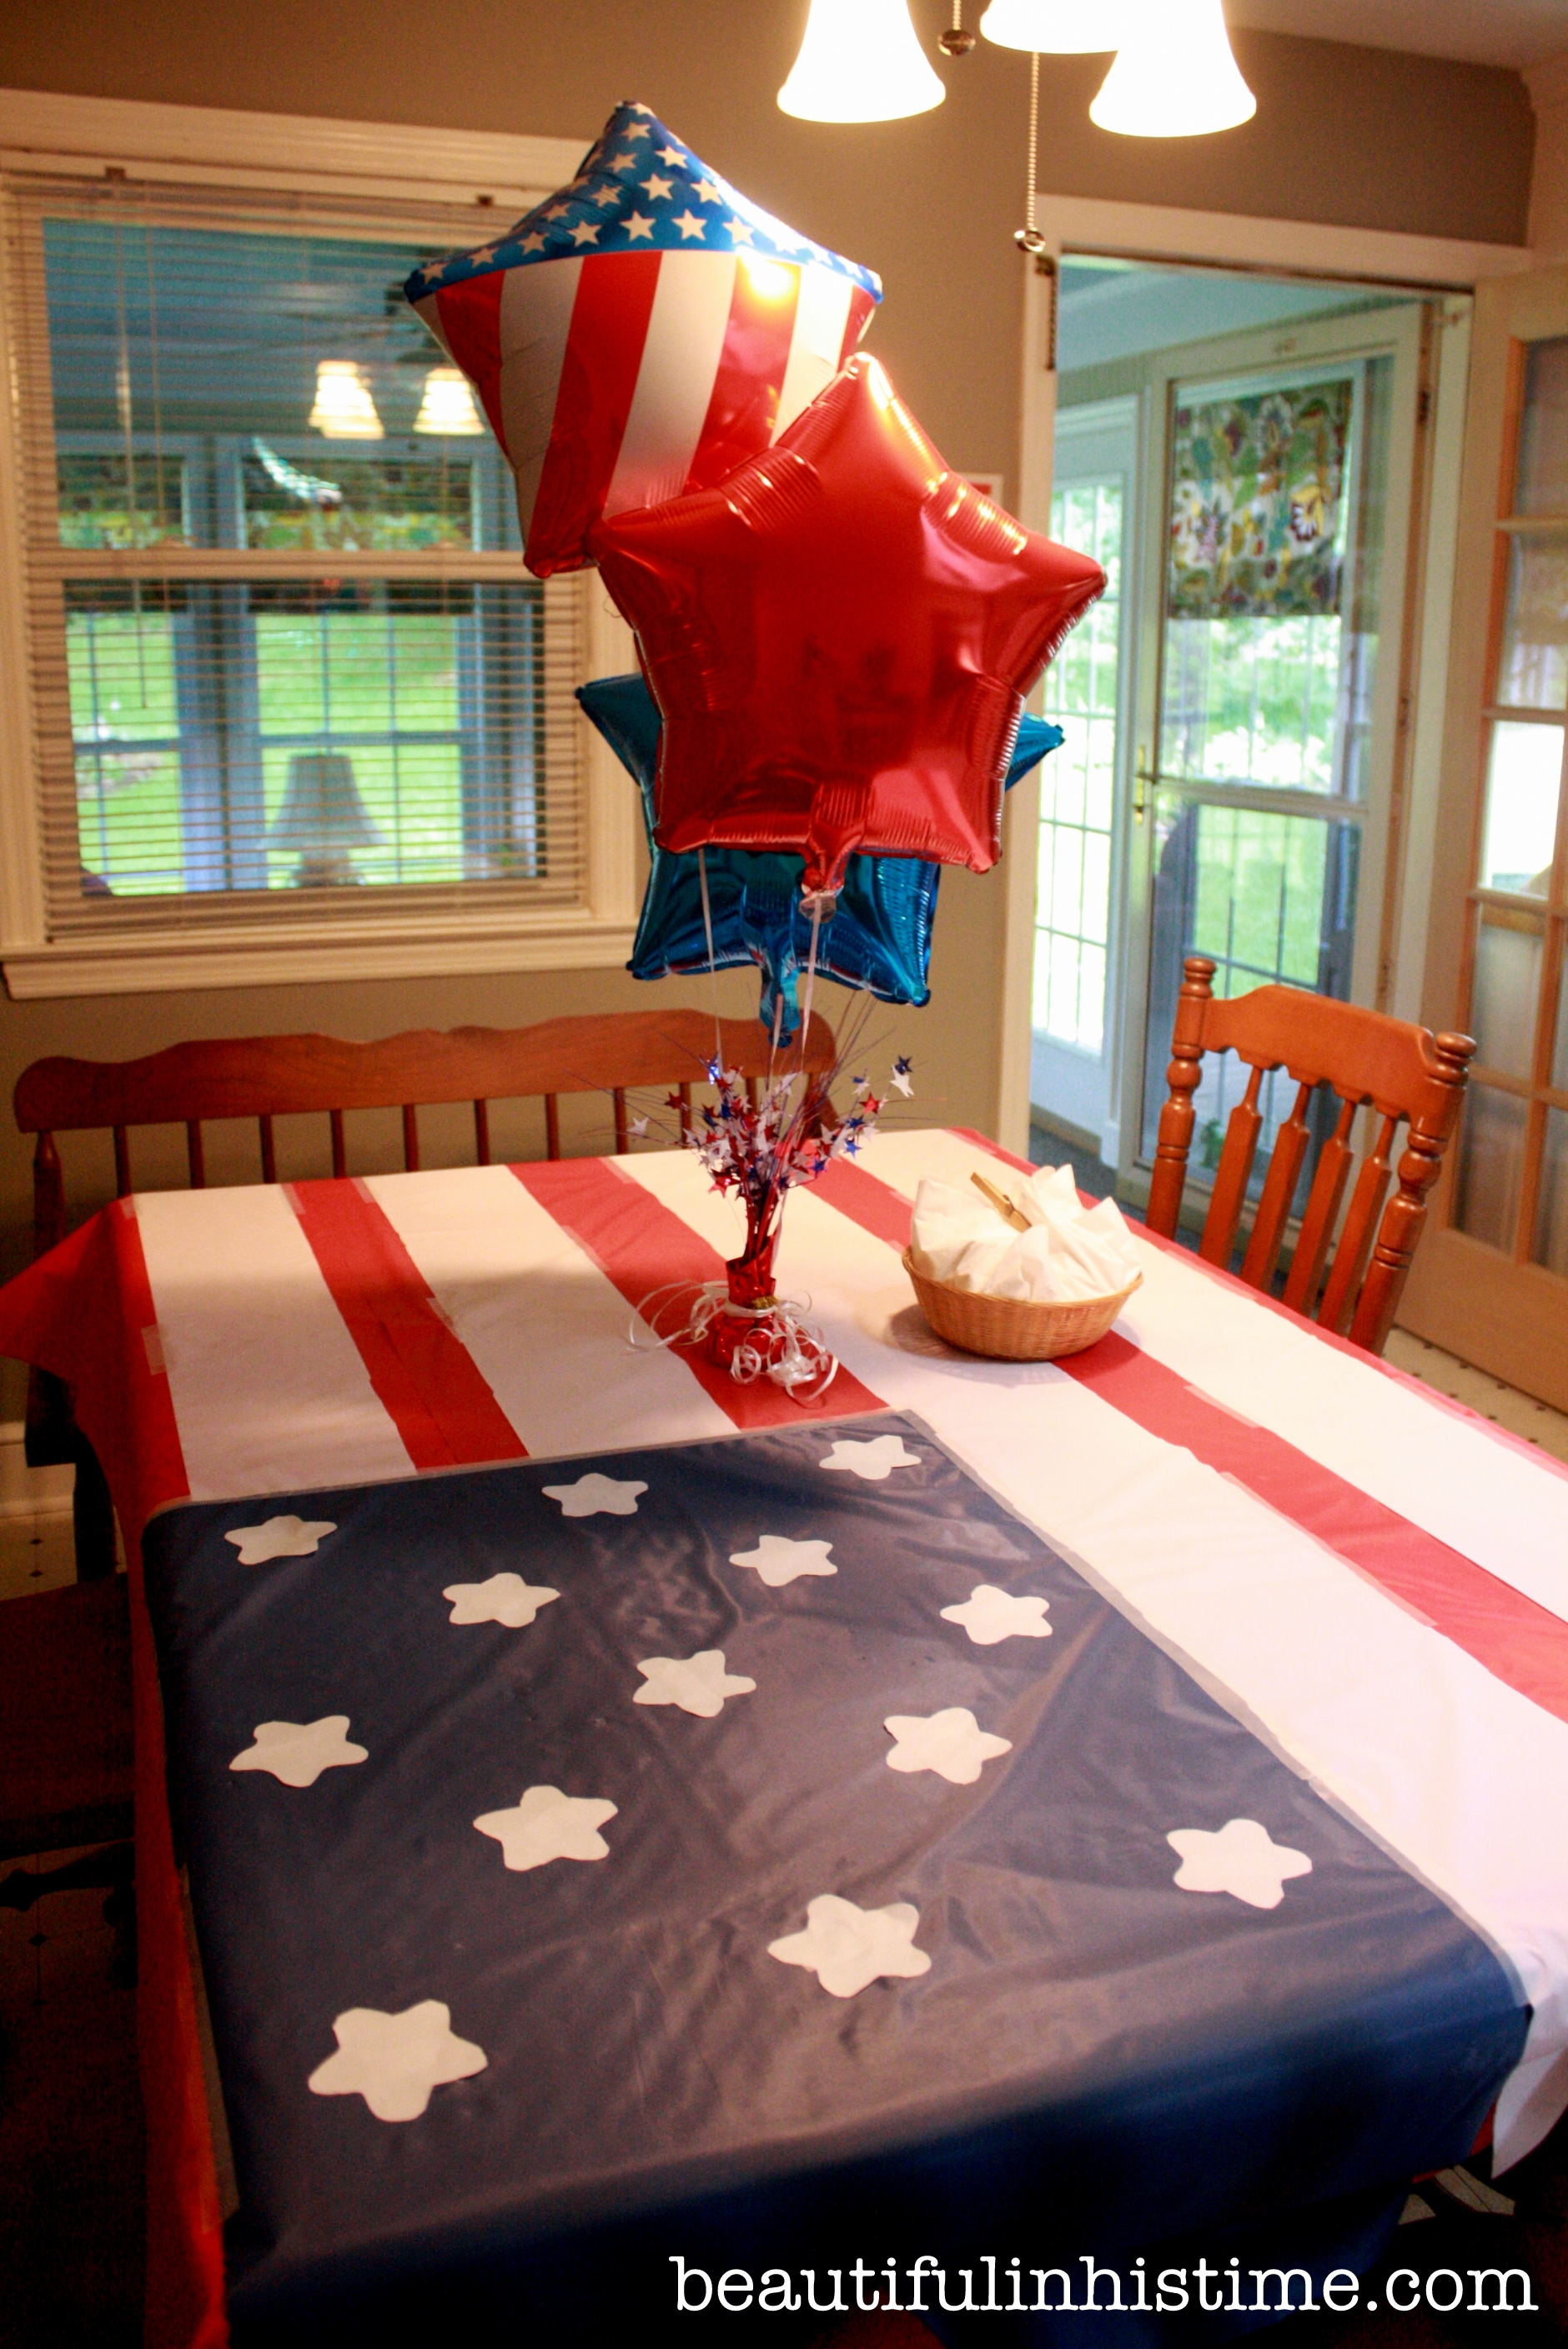 patriotic flag tablecloth A Birthday Party for America! #birthday #america #4thofjuly #independenceday #party #birthdayparty